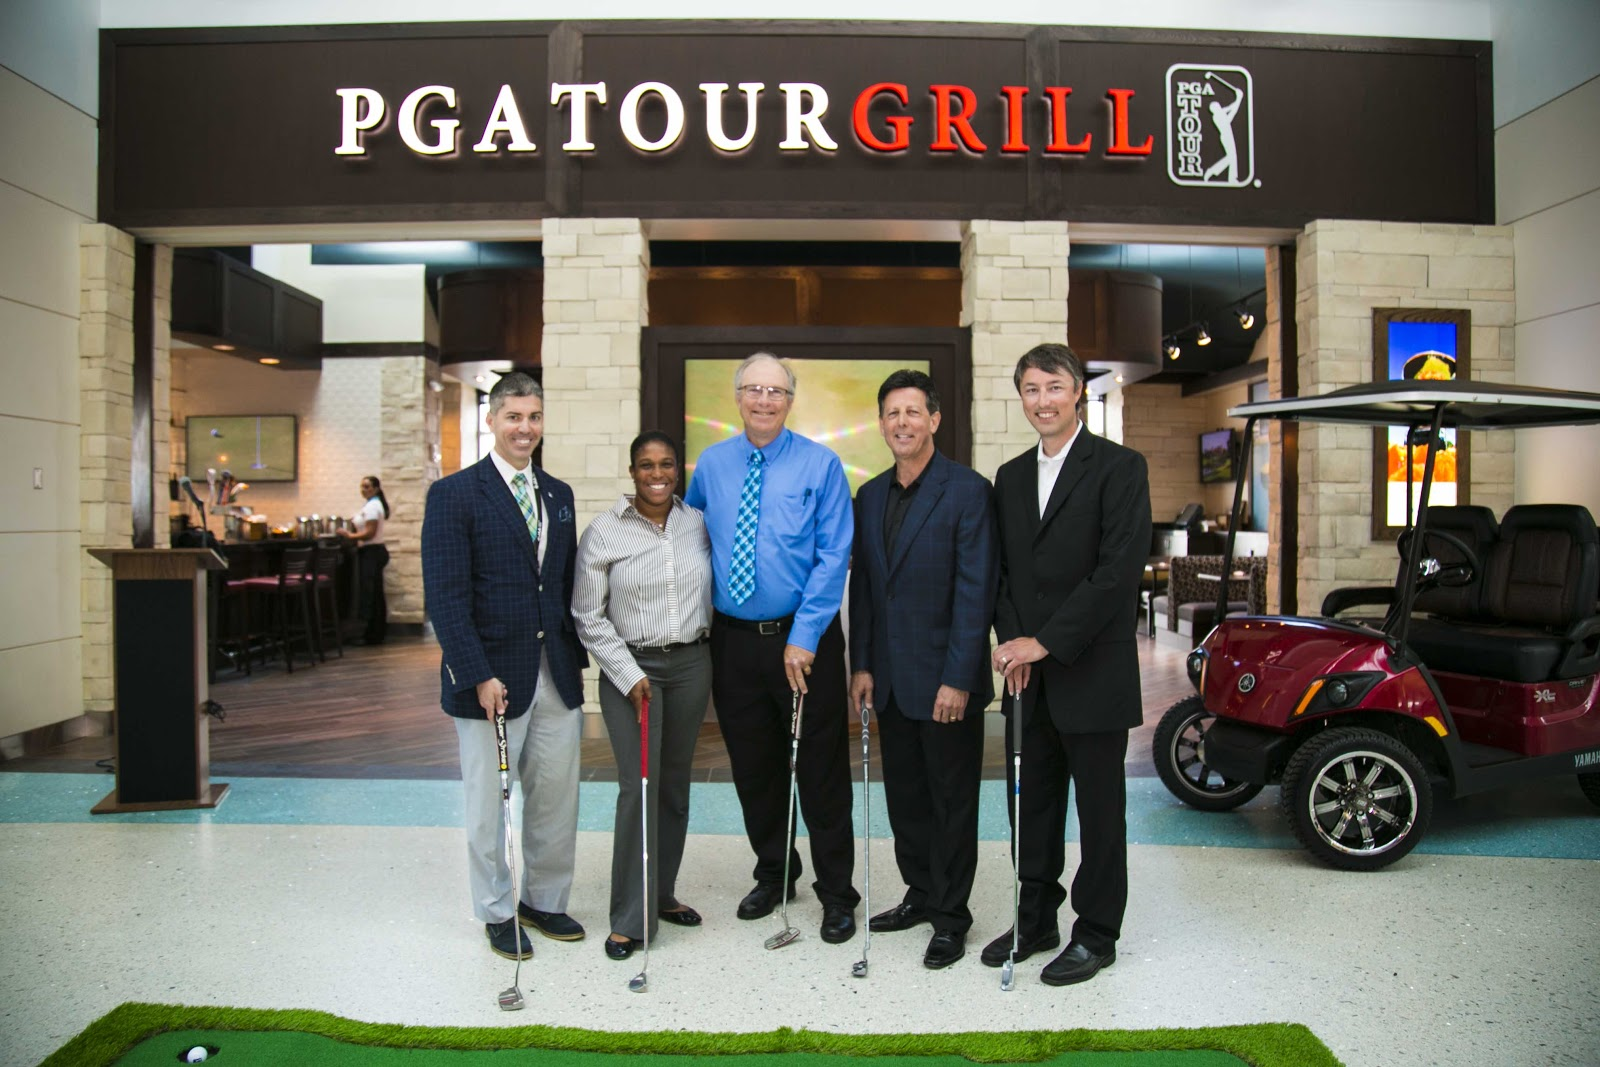 Image result for pga tour grill jacksonville airport